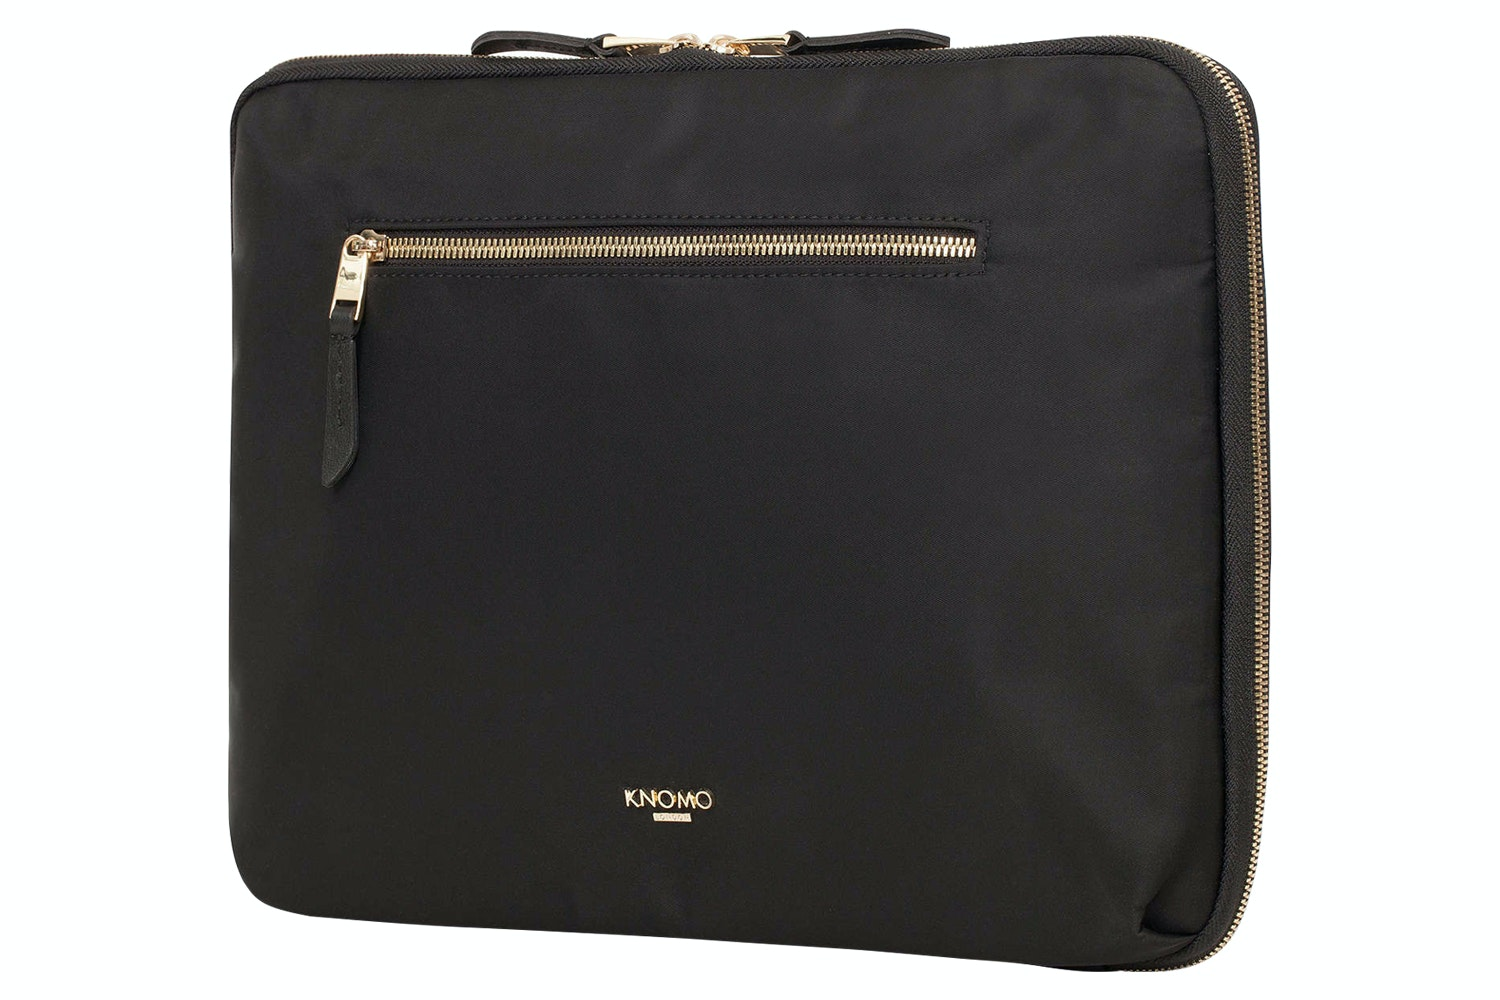 "Knomo Mayfair 10.5"" Knomad Organizer 